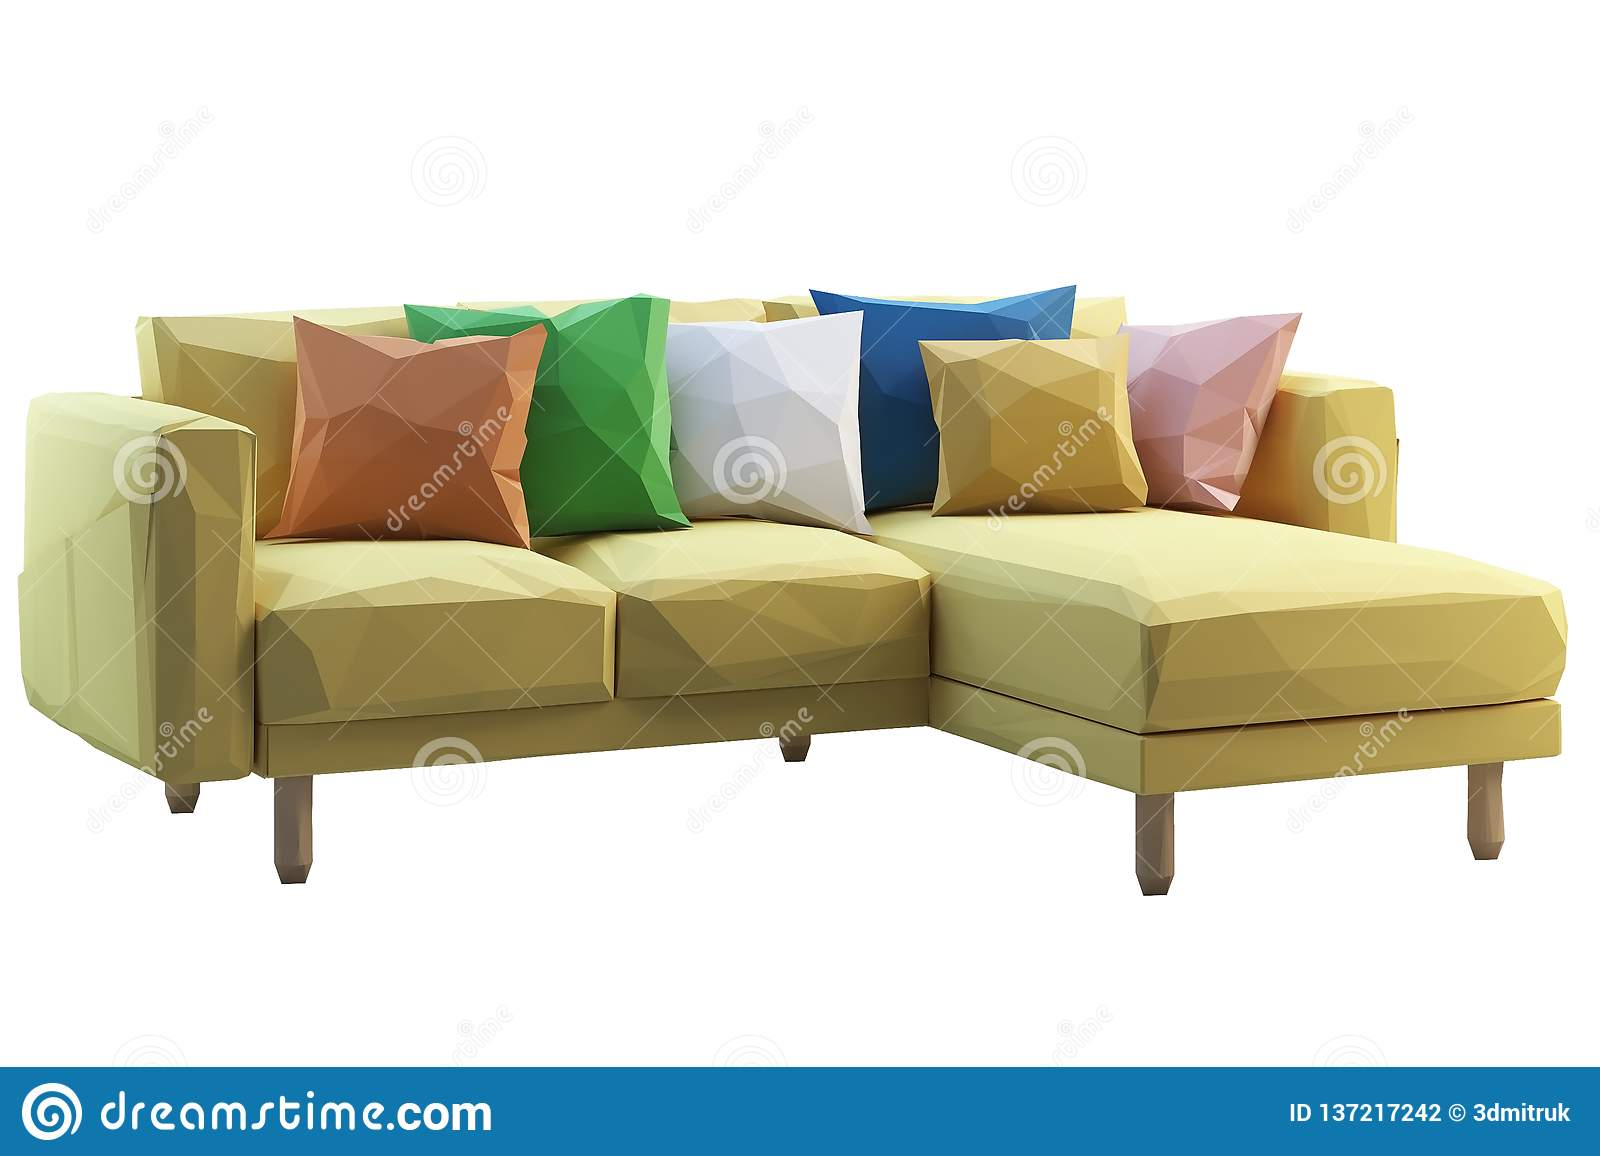 Modern Low Poly Yellow Fabric Sofa With Colored Pillows. 3d ...